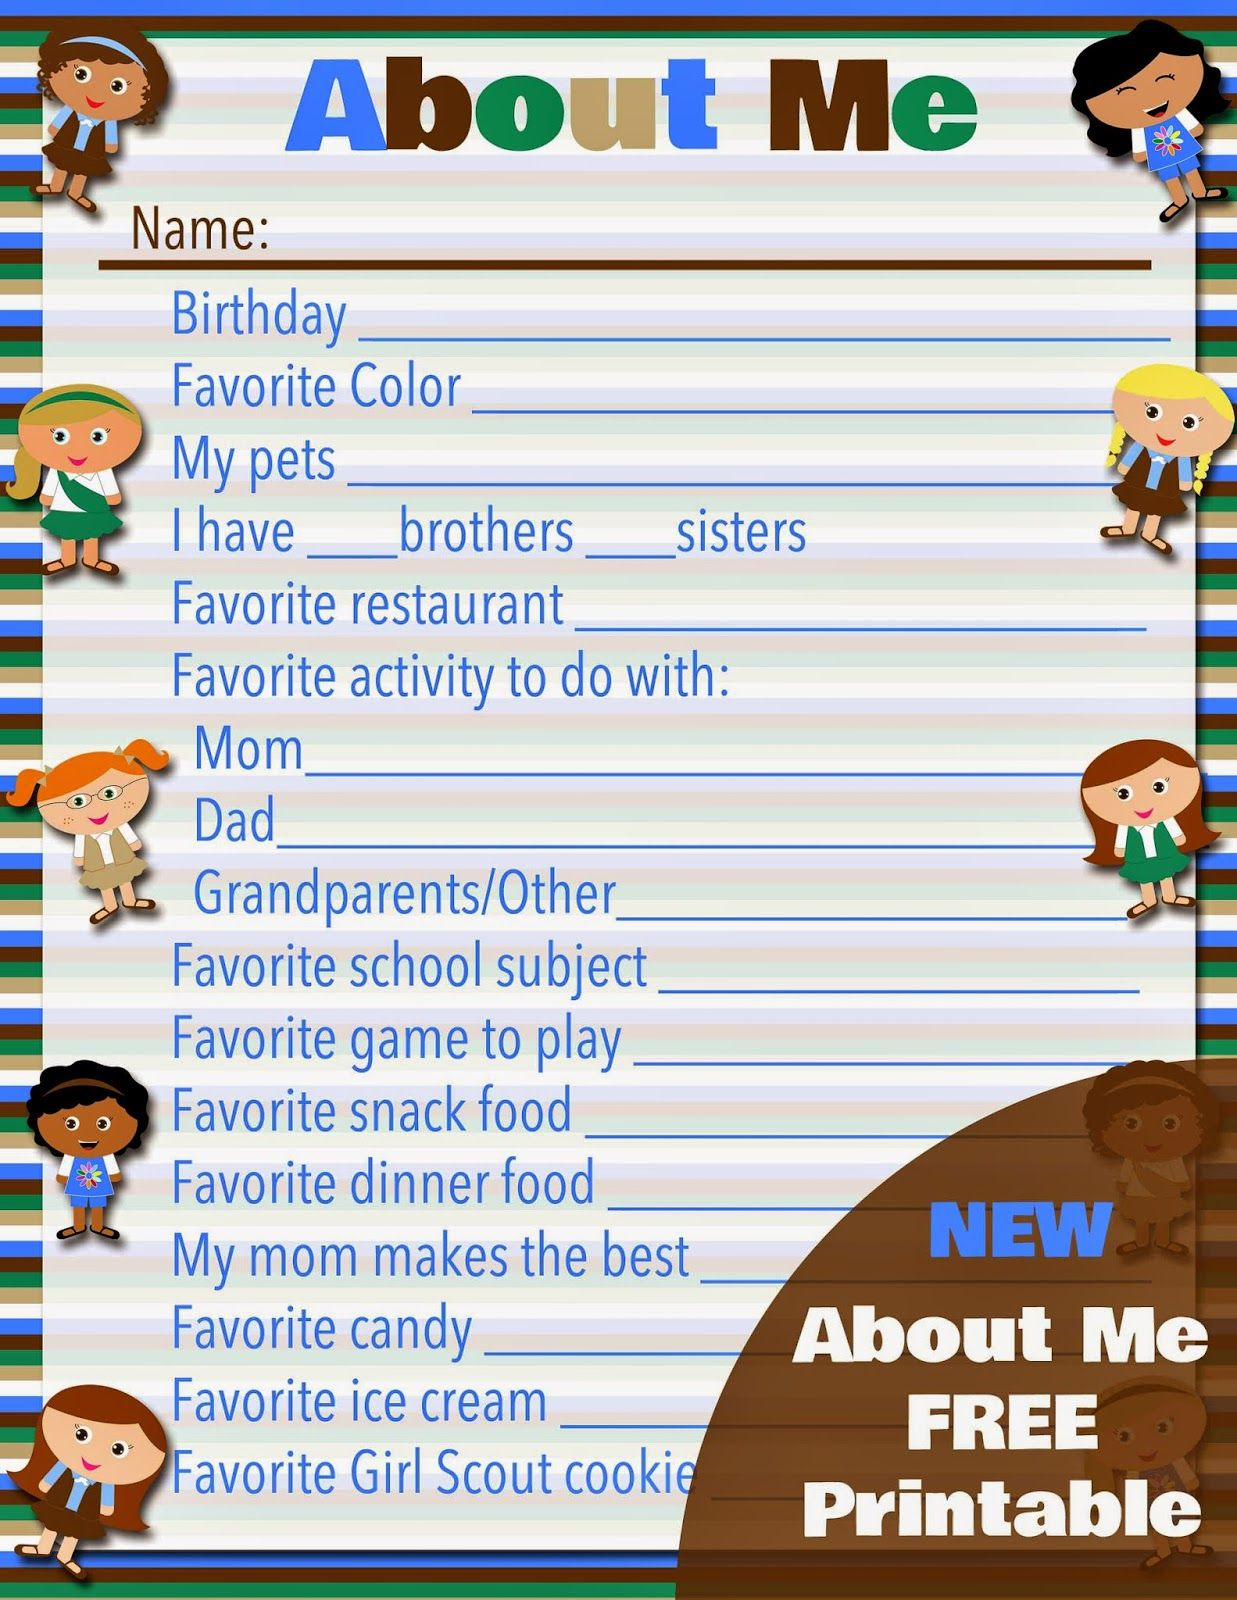 Fashionable Moms Free Printable Girl Scouts About Me